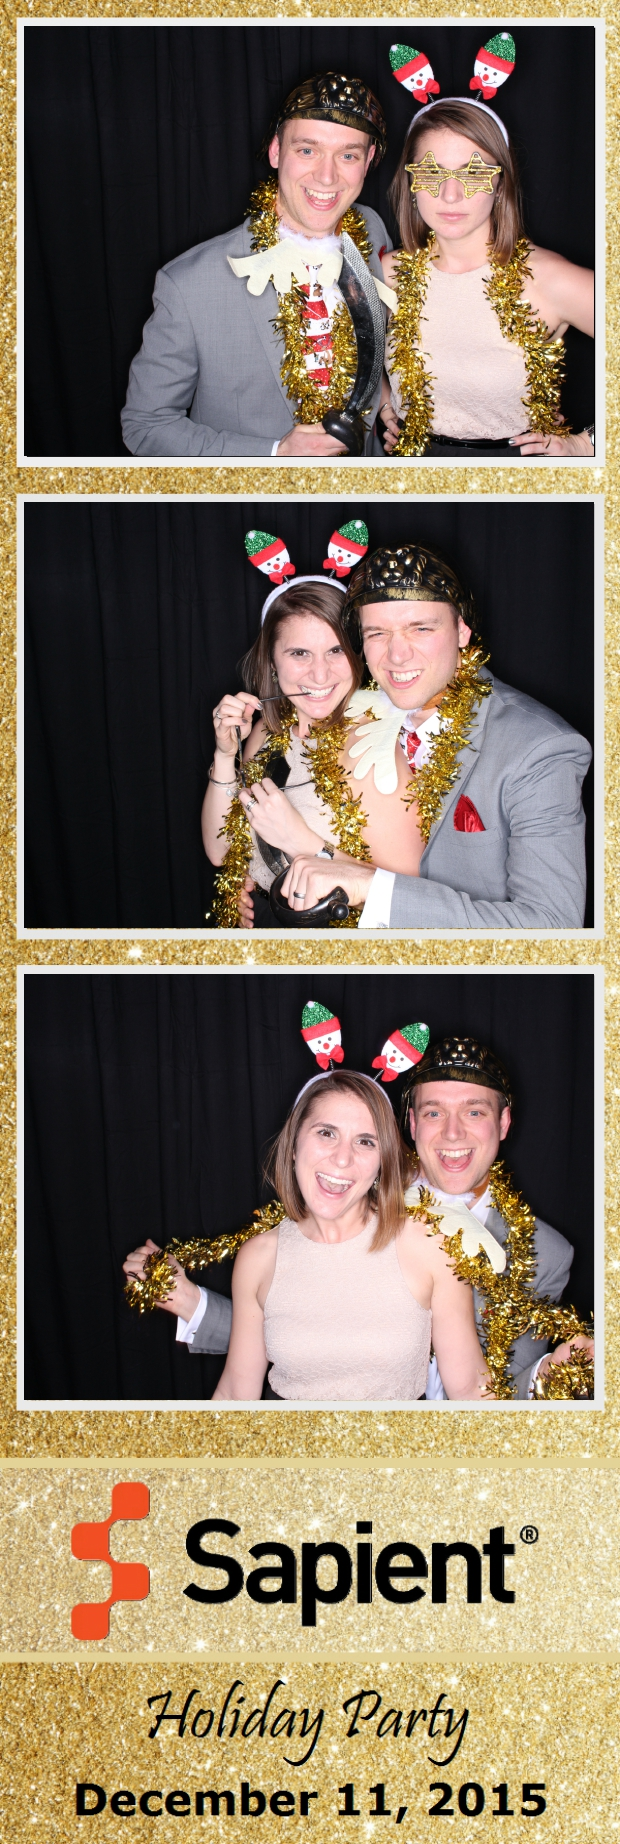 Guest House Events Photo Booth Sapient Holiday Party (78).jpg